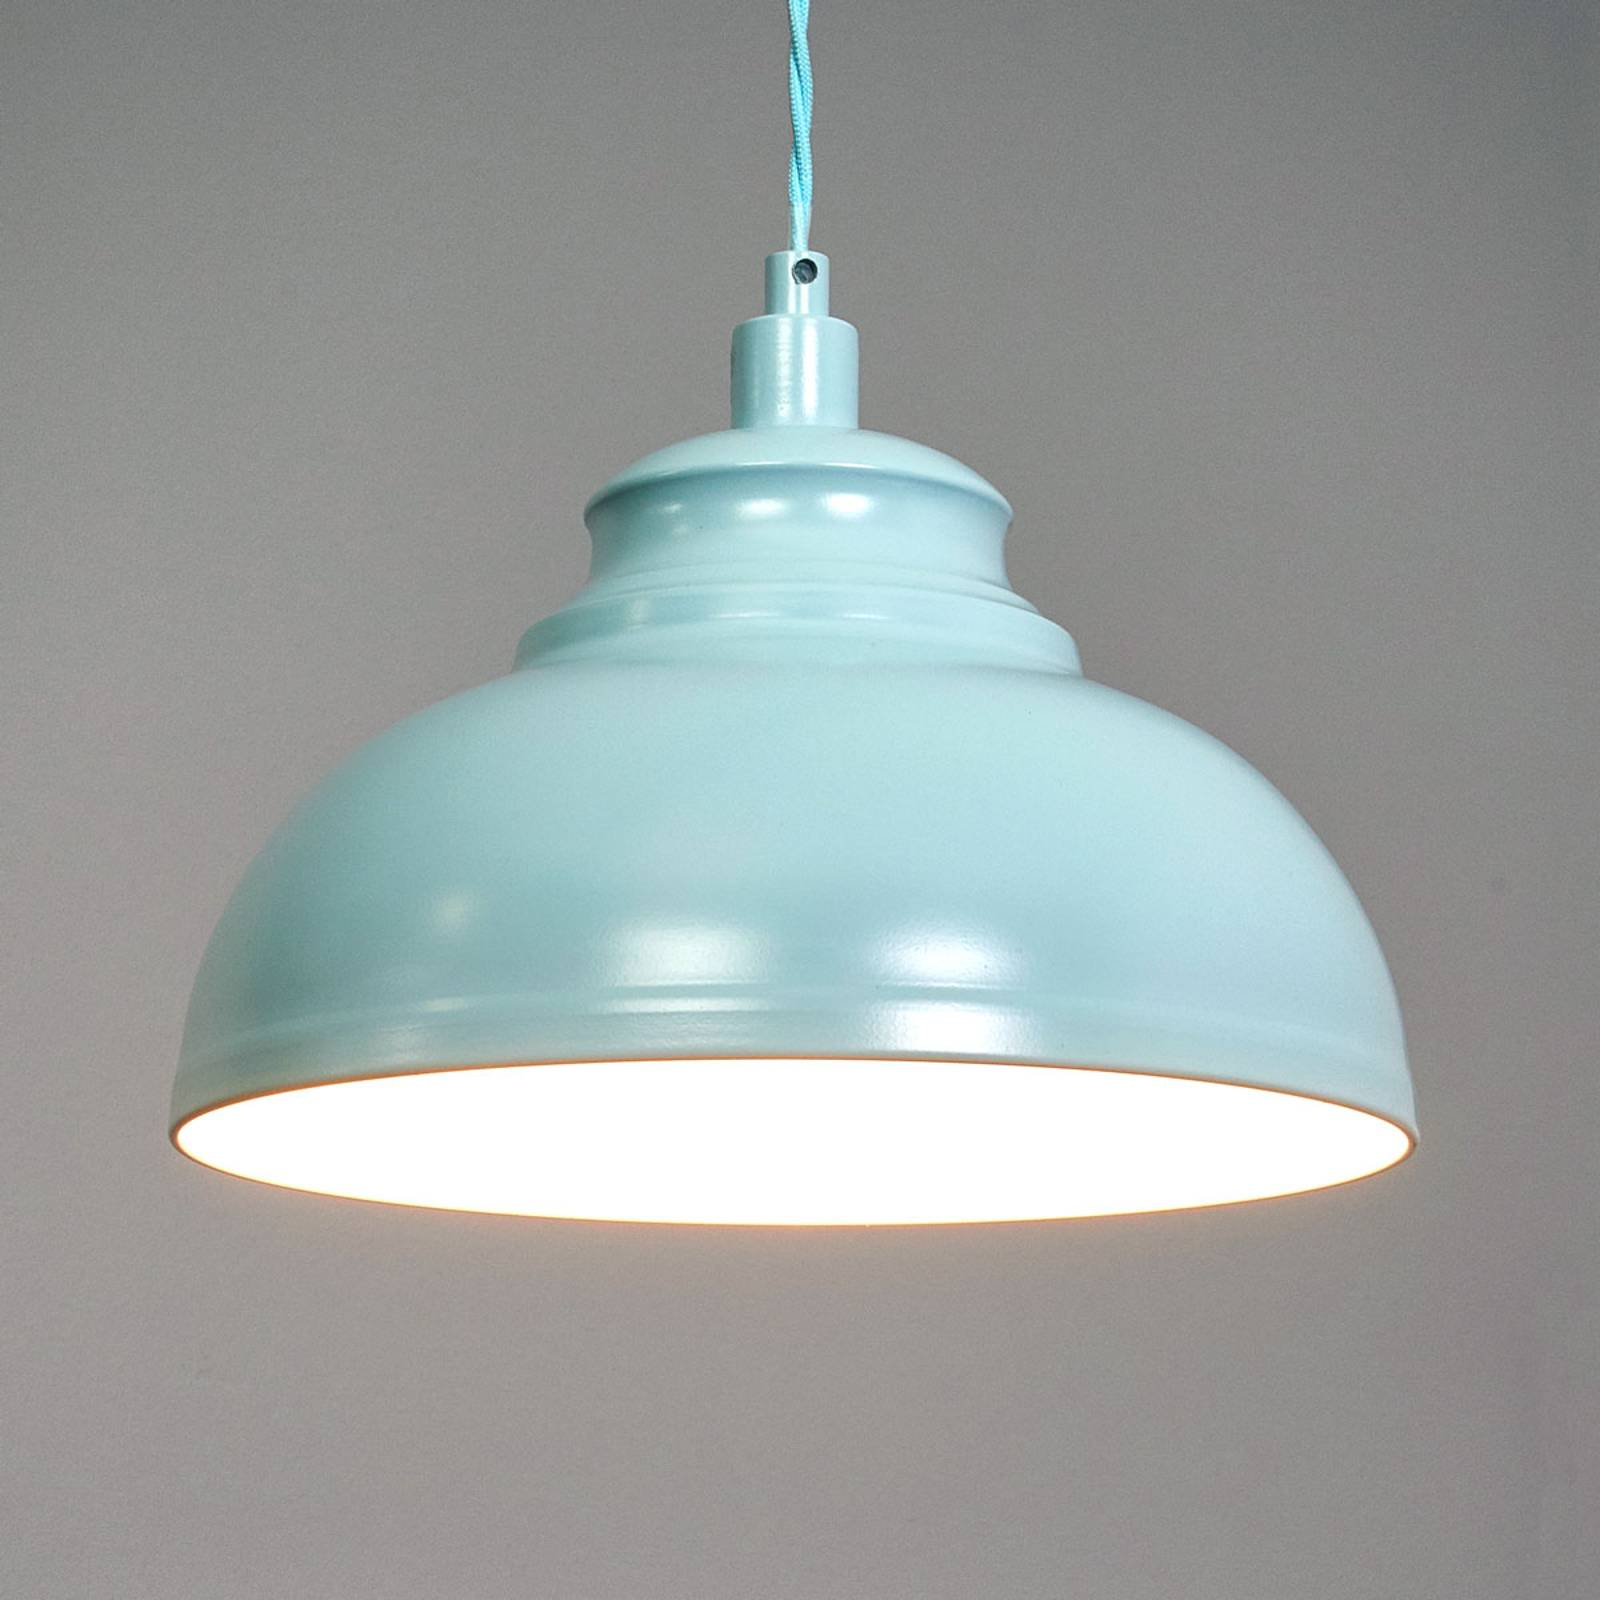 Isla - a hanging light in a soft blue colour from Lucide